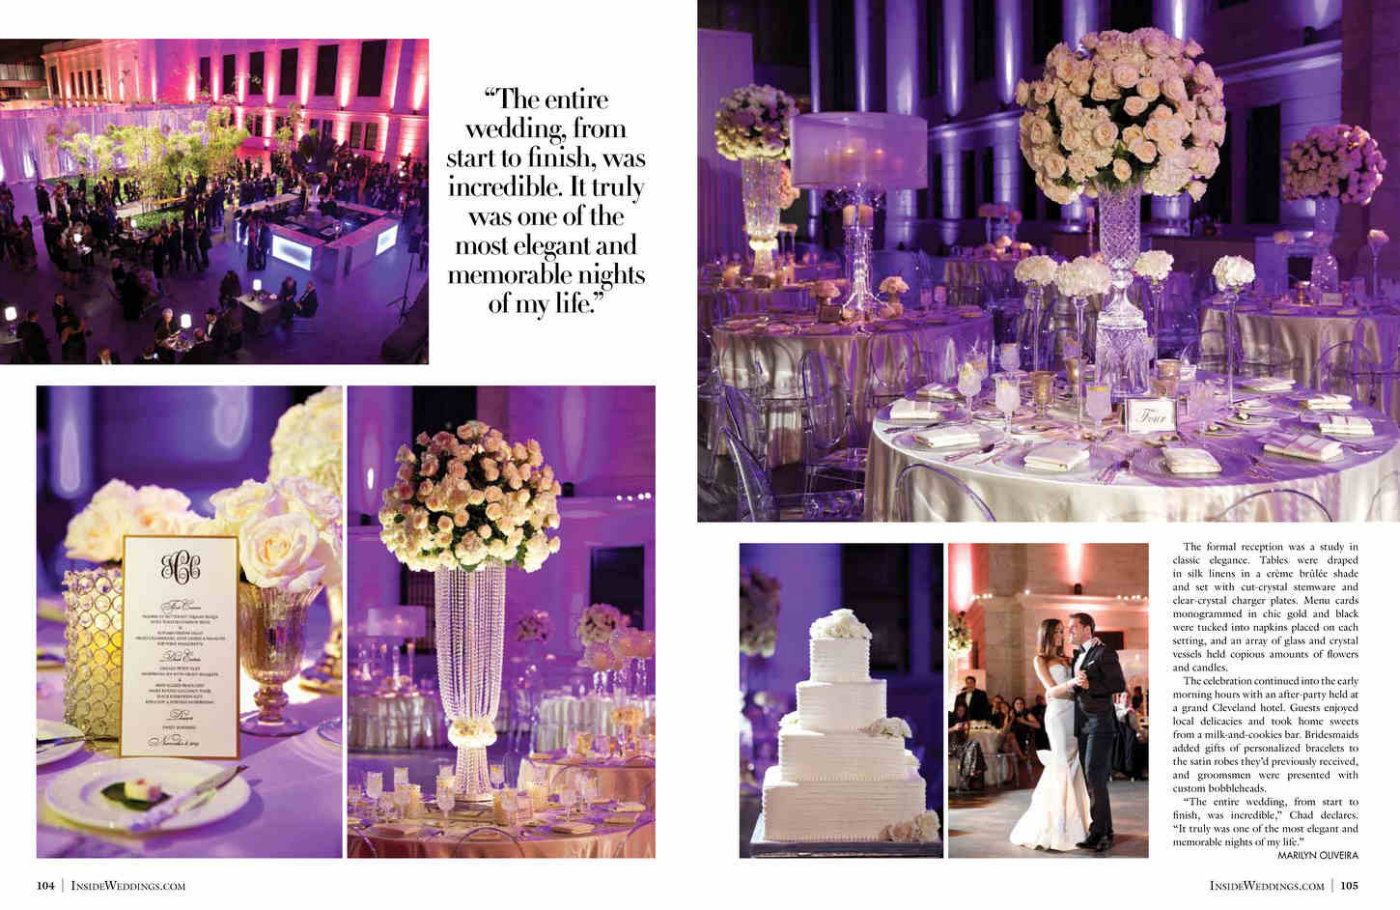 Thank you to the team at Inside Weddings for selecting Jen and Chad's wedding to feature in the Fall 2015 edition. We're always so grateful to the Publishers Walt and Art, and Editor, Nicole. Thank you Reva Nathan & Associates who planned this wedding and HMR Designs who brought it all together at The Cleveland Museum of Art in Ohio. Chad proposed to Jen on his Bravo TV Show Million Dollar Listing Miami, he's not shy at all. Click here for a list of vendors.